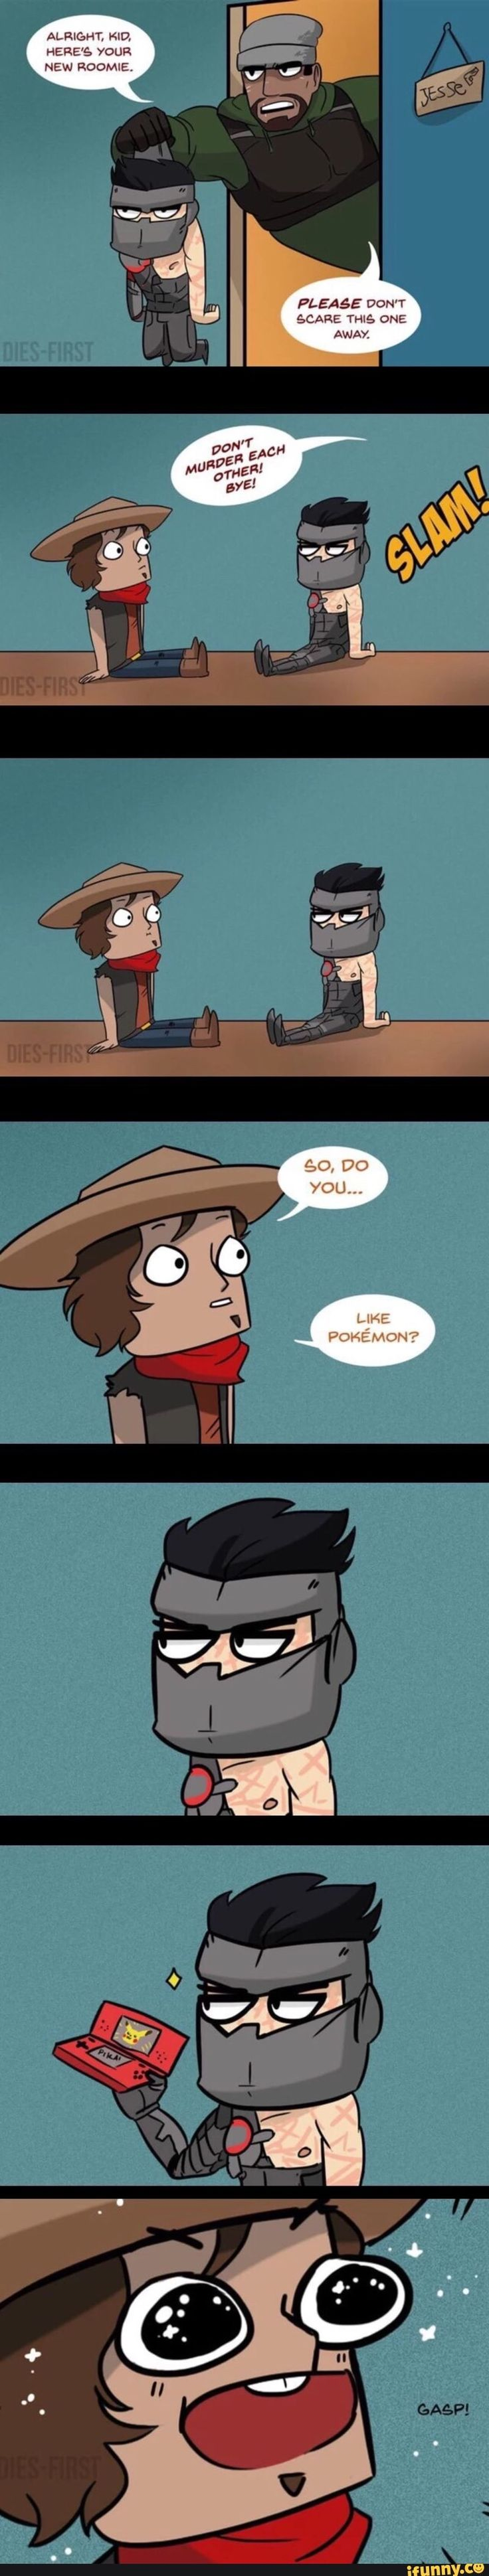 Overwatch young Gabriel, Genji and McCree comic by dies-first on Tumblr